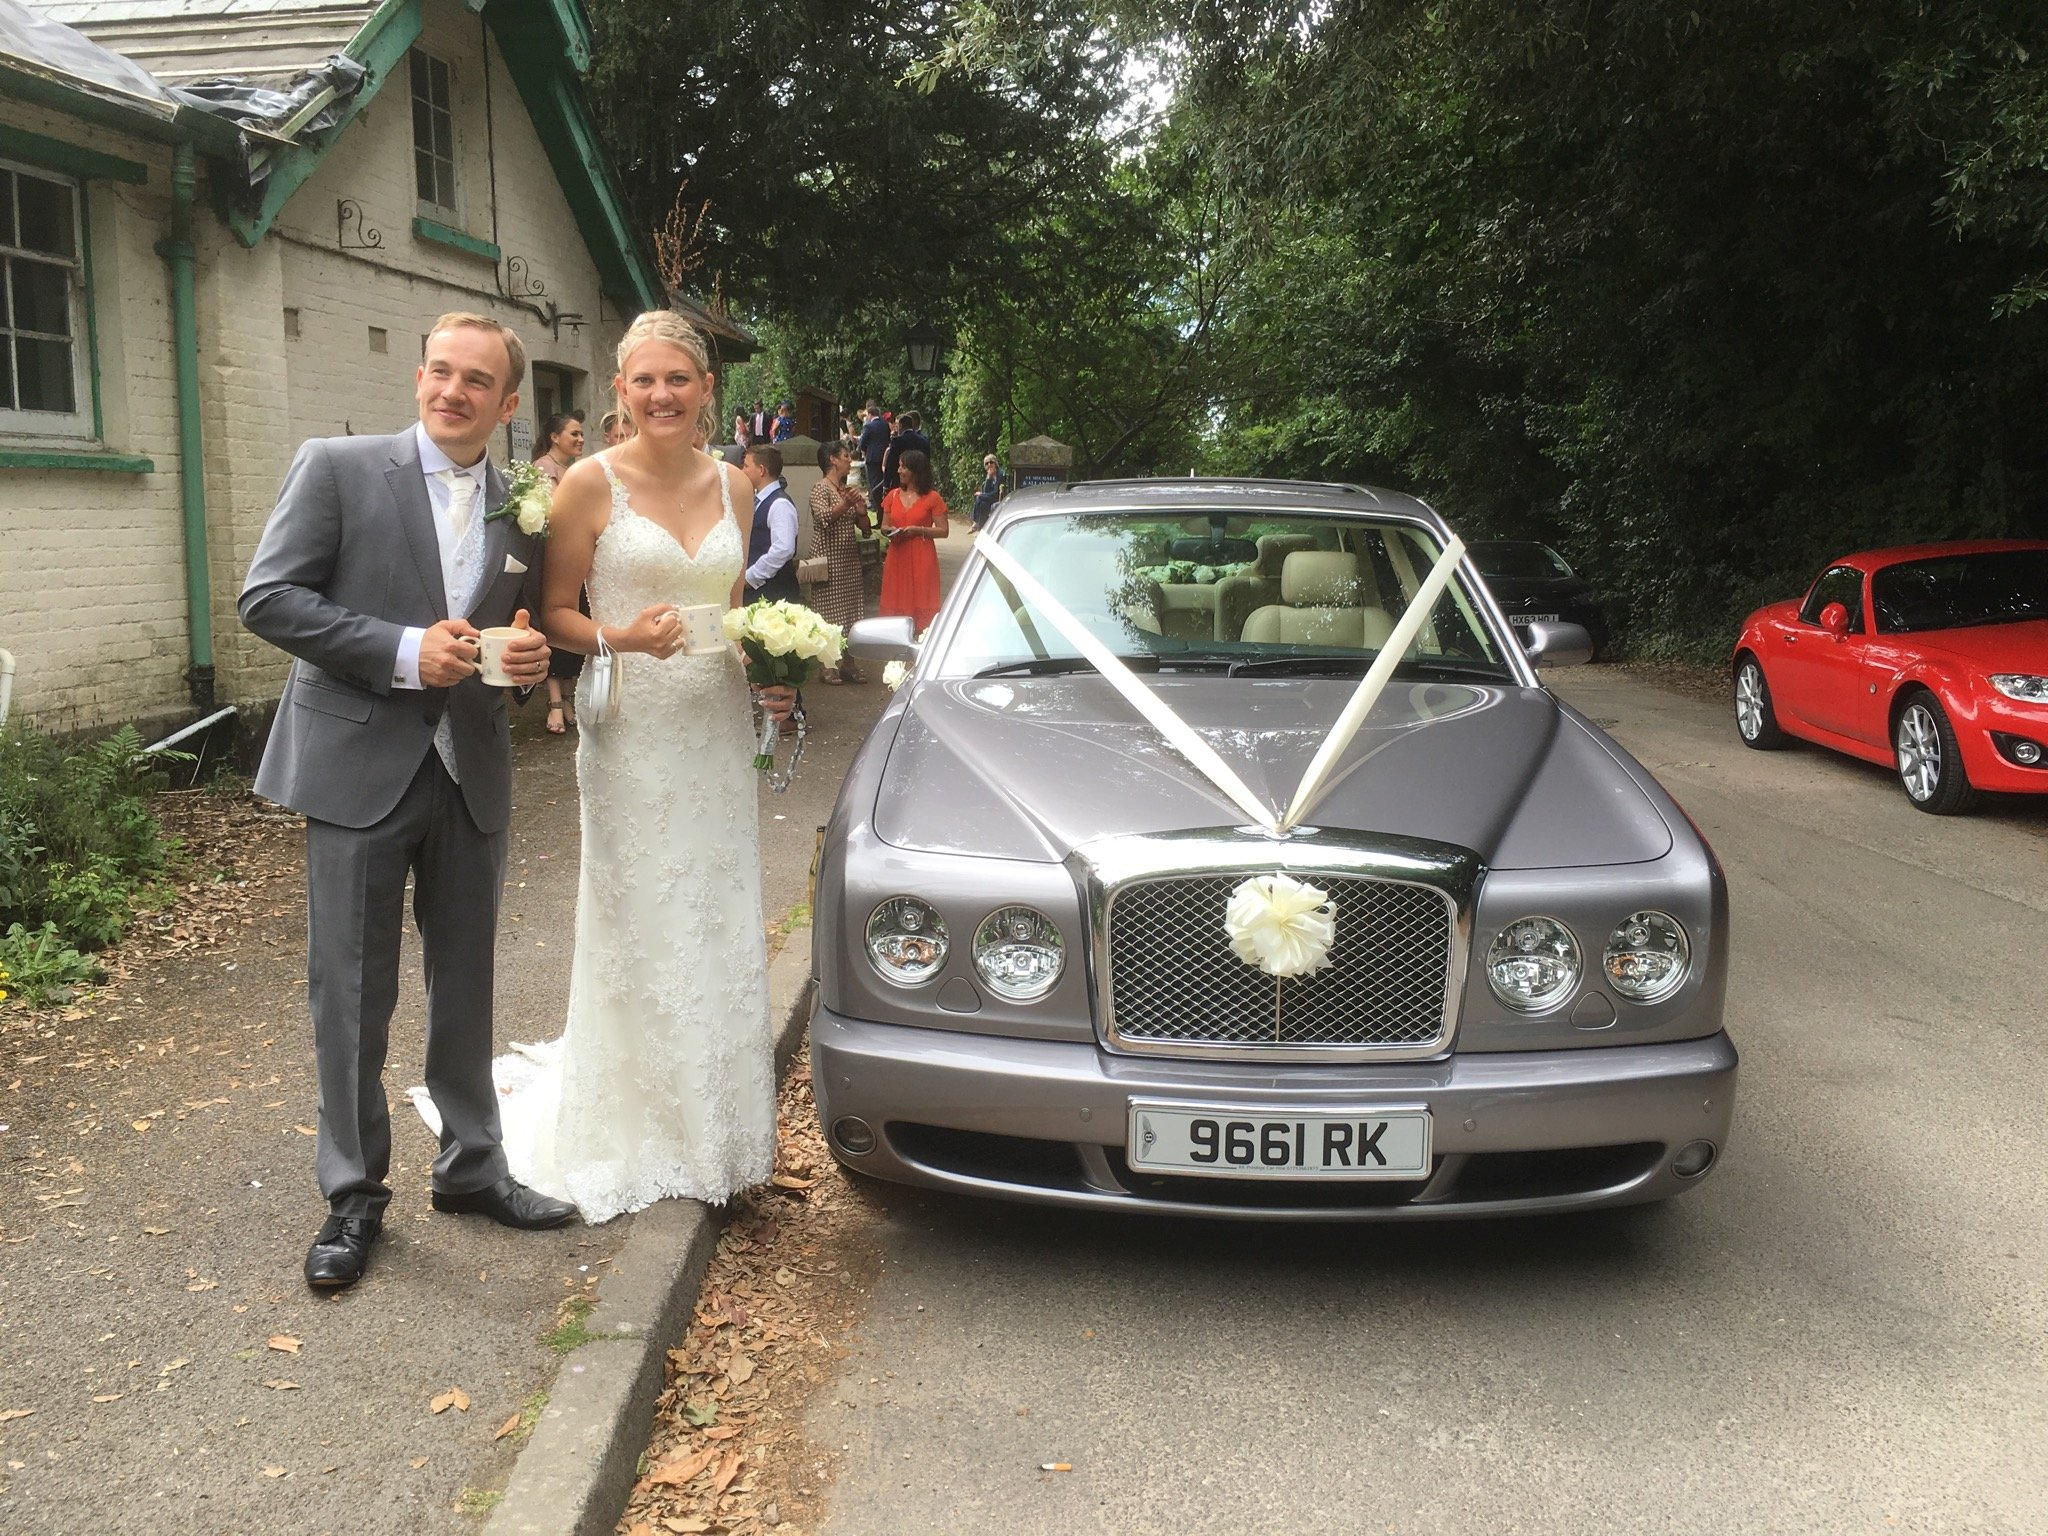 Couple posing with their wedding car